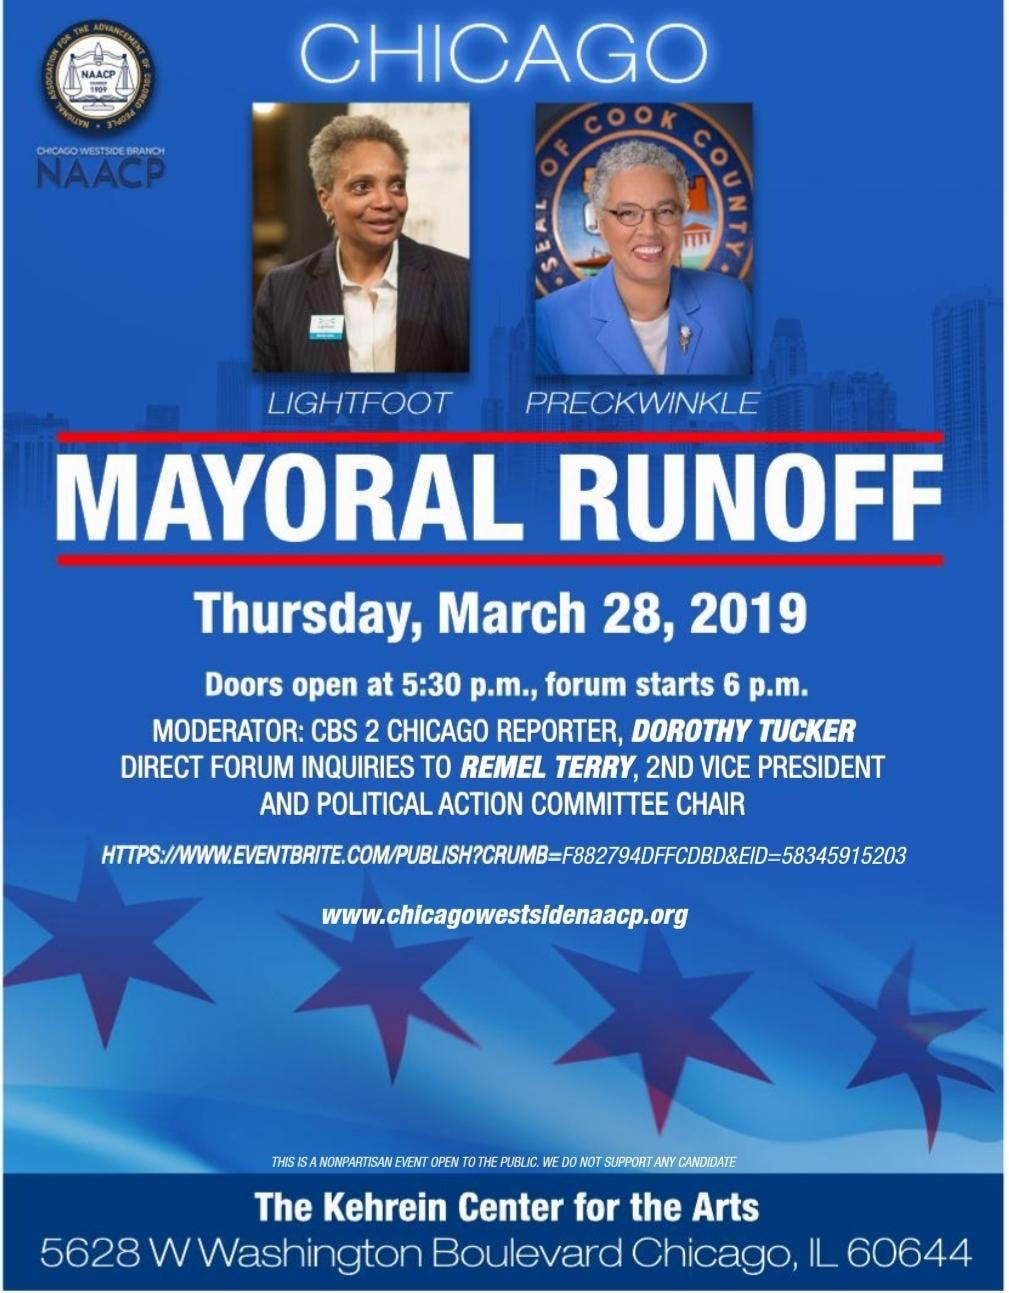 Chicago Westside NAACP IL Mayoral Runoff Forum